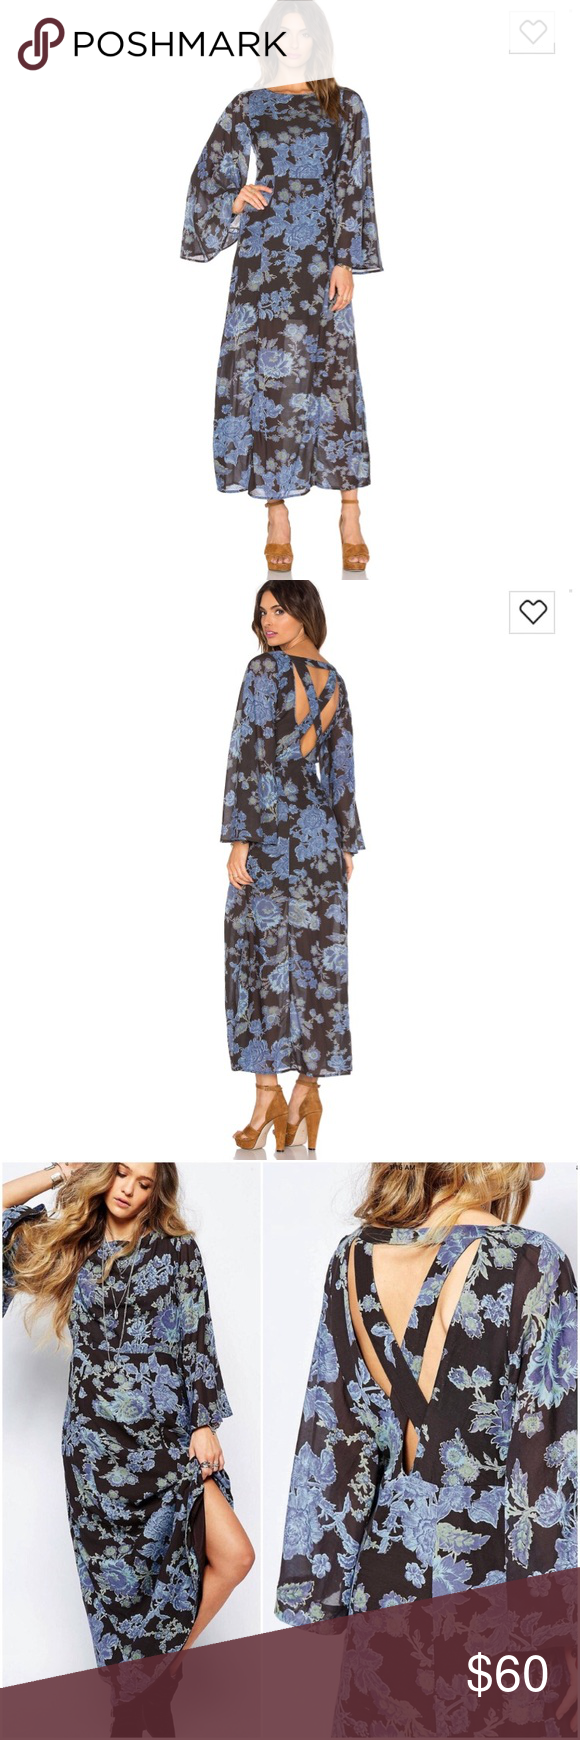 "5838d856ab7 New Free People Melrose Floral Boho Dress NWOT Free People Dress ""Melrose"" (night  combo) – stunning long black dress in blue floral print with bell sleeves  ..."